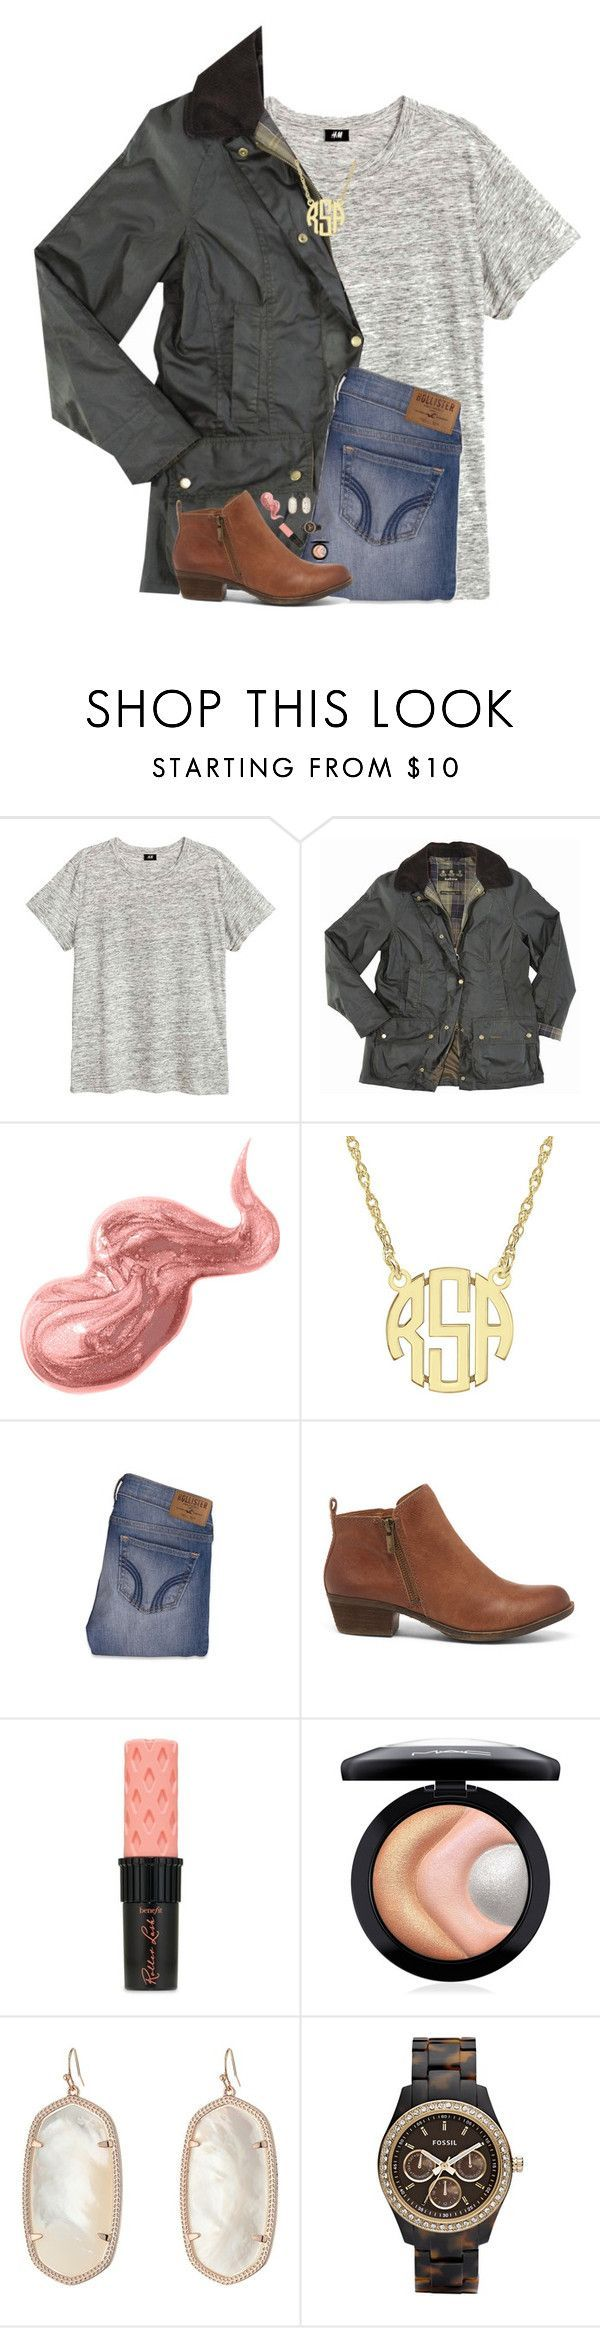 """""""{oh what fun it is to ride in a one horse open sleigh}"""" by hgw8503 ❤ liked on Polyvore featuring Barbour, Bobbi Brown Cosmetics, Hollister Co., Lucky Brand, Benefit, MAC Cosmetics, Kendra Scott and FOSSIL"""